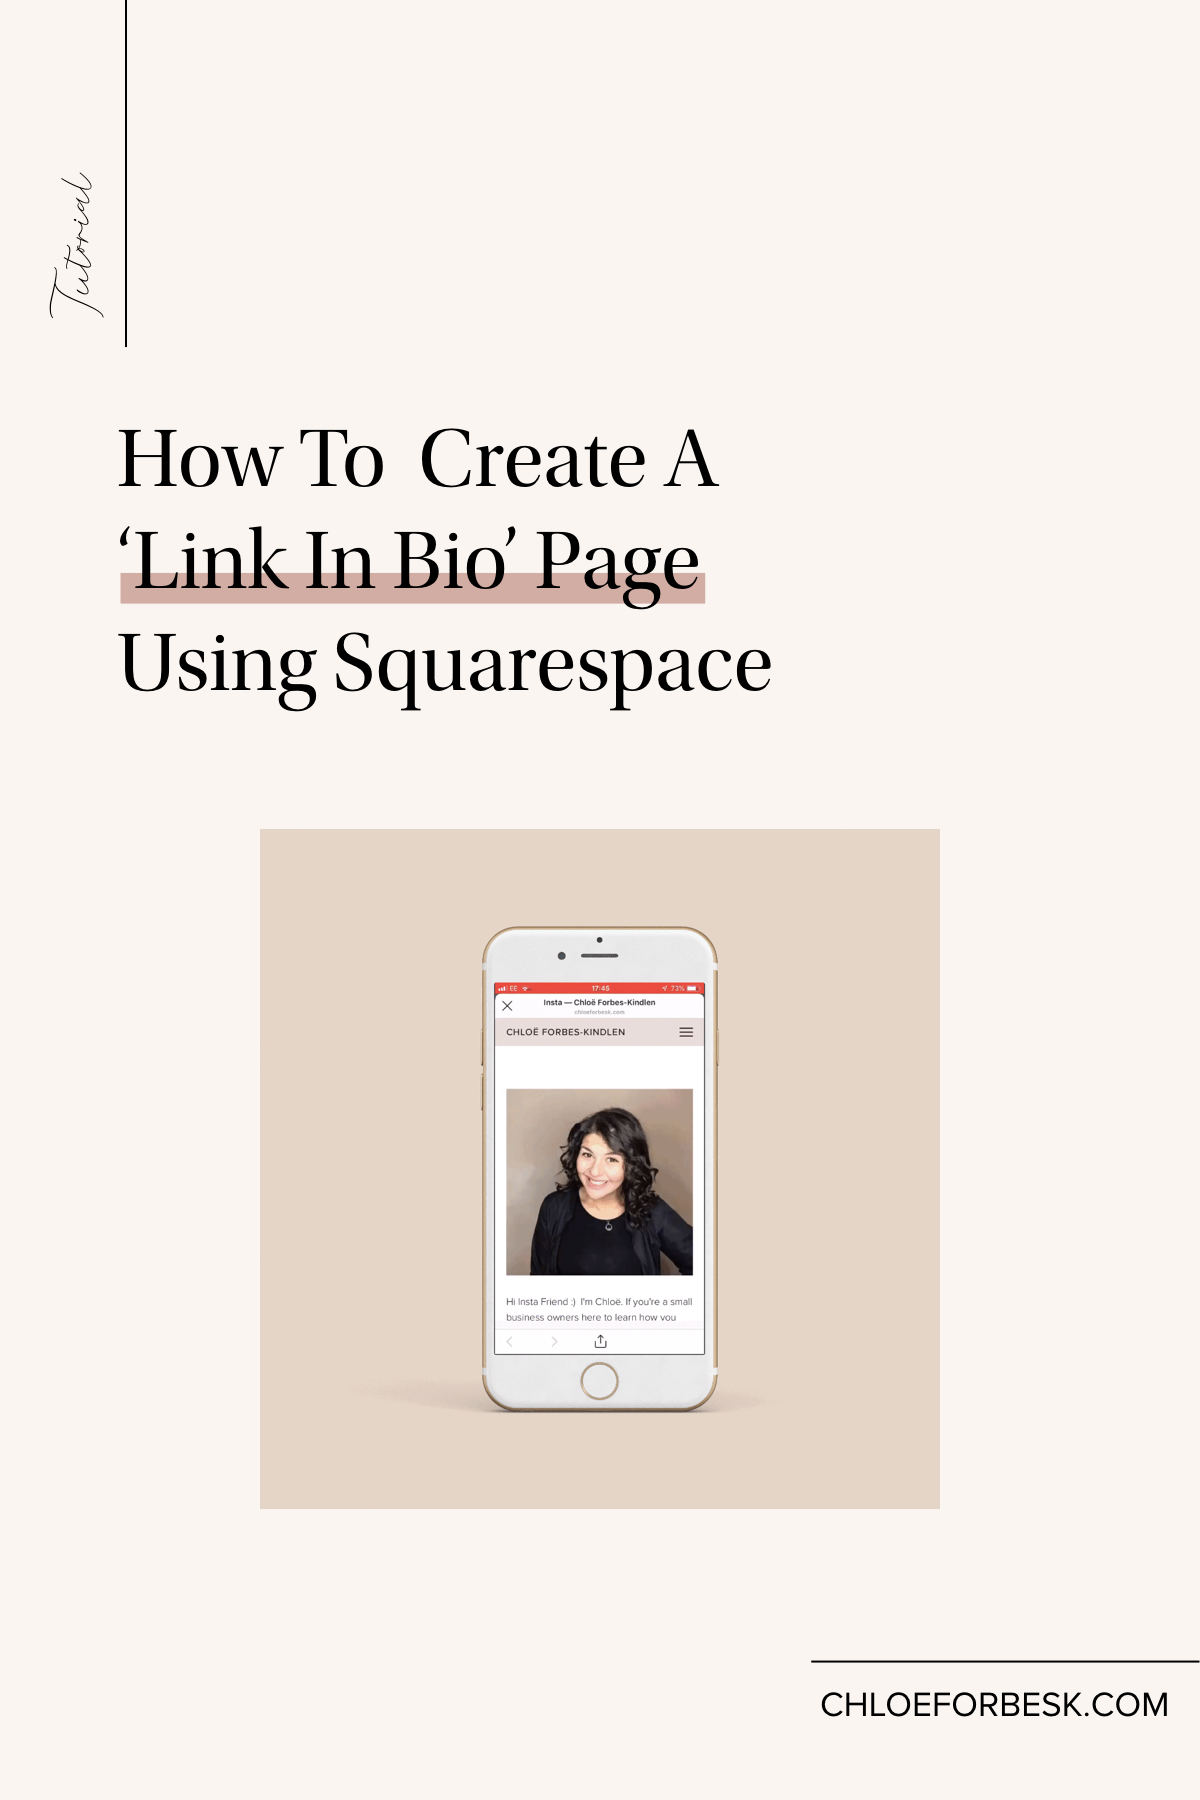 How To Create Link In Bio Page.002.jpeg